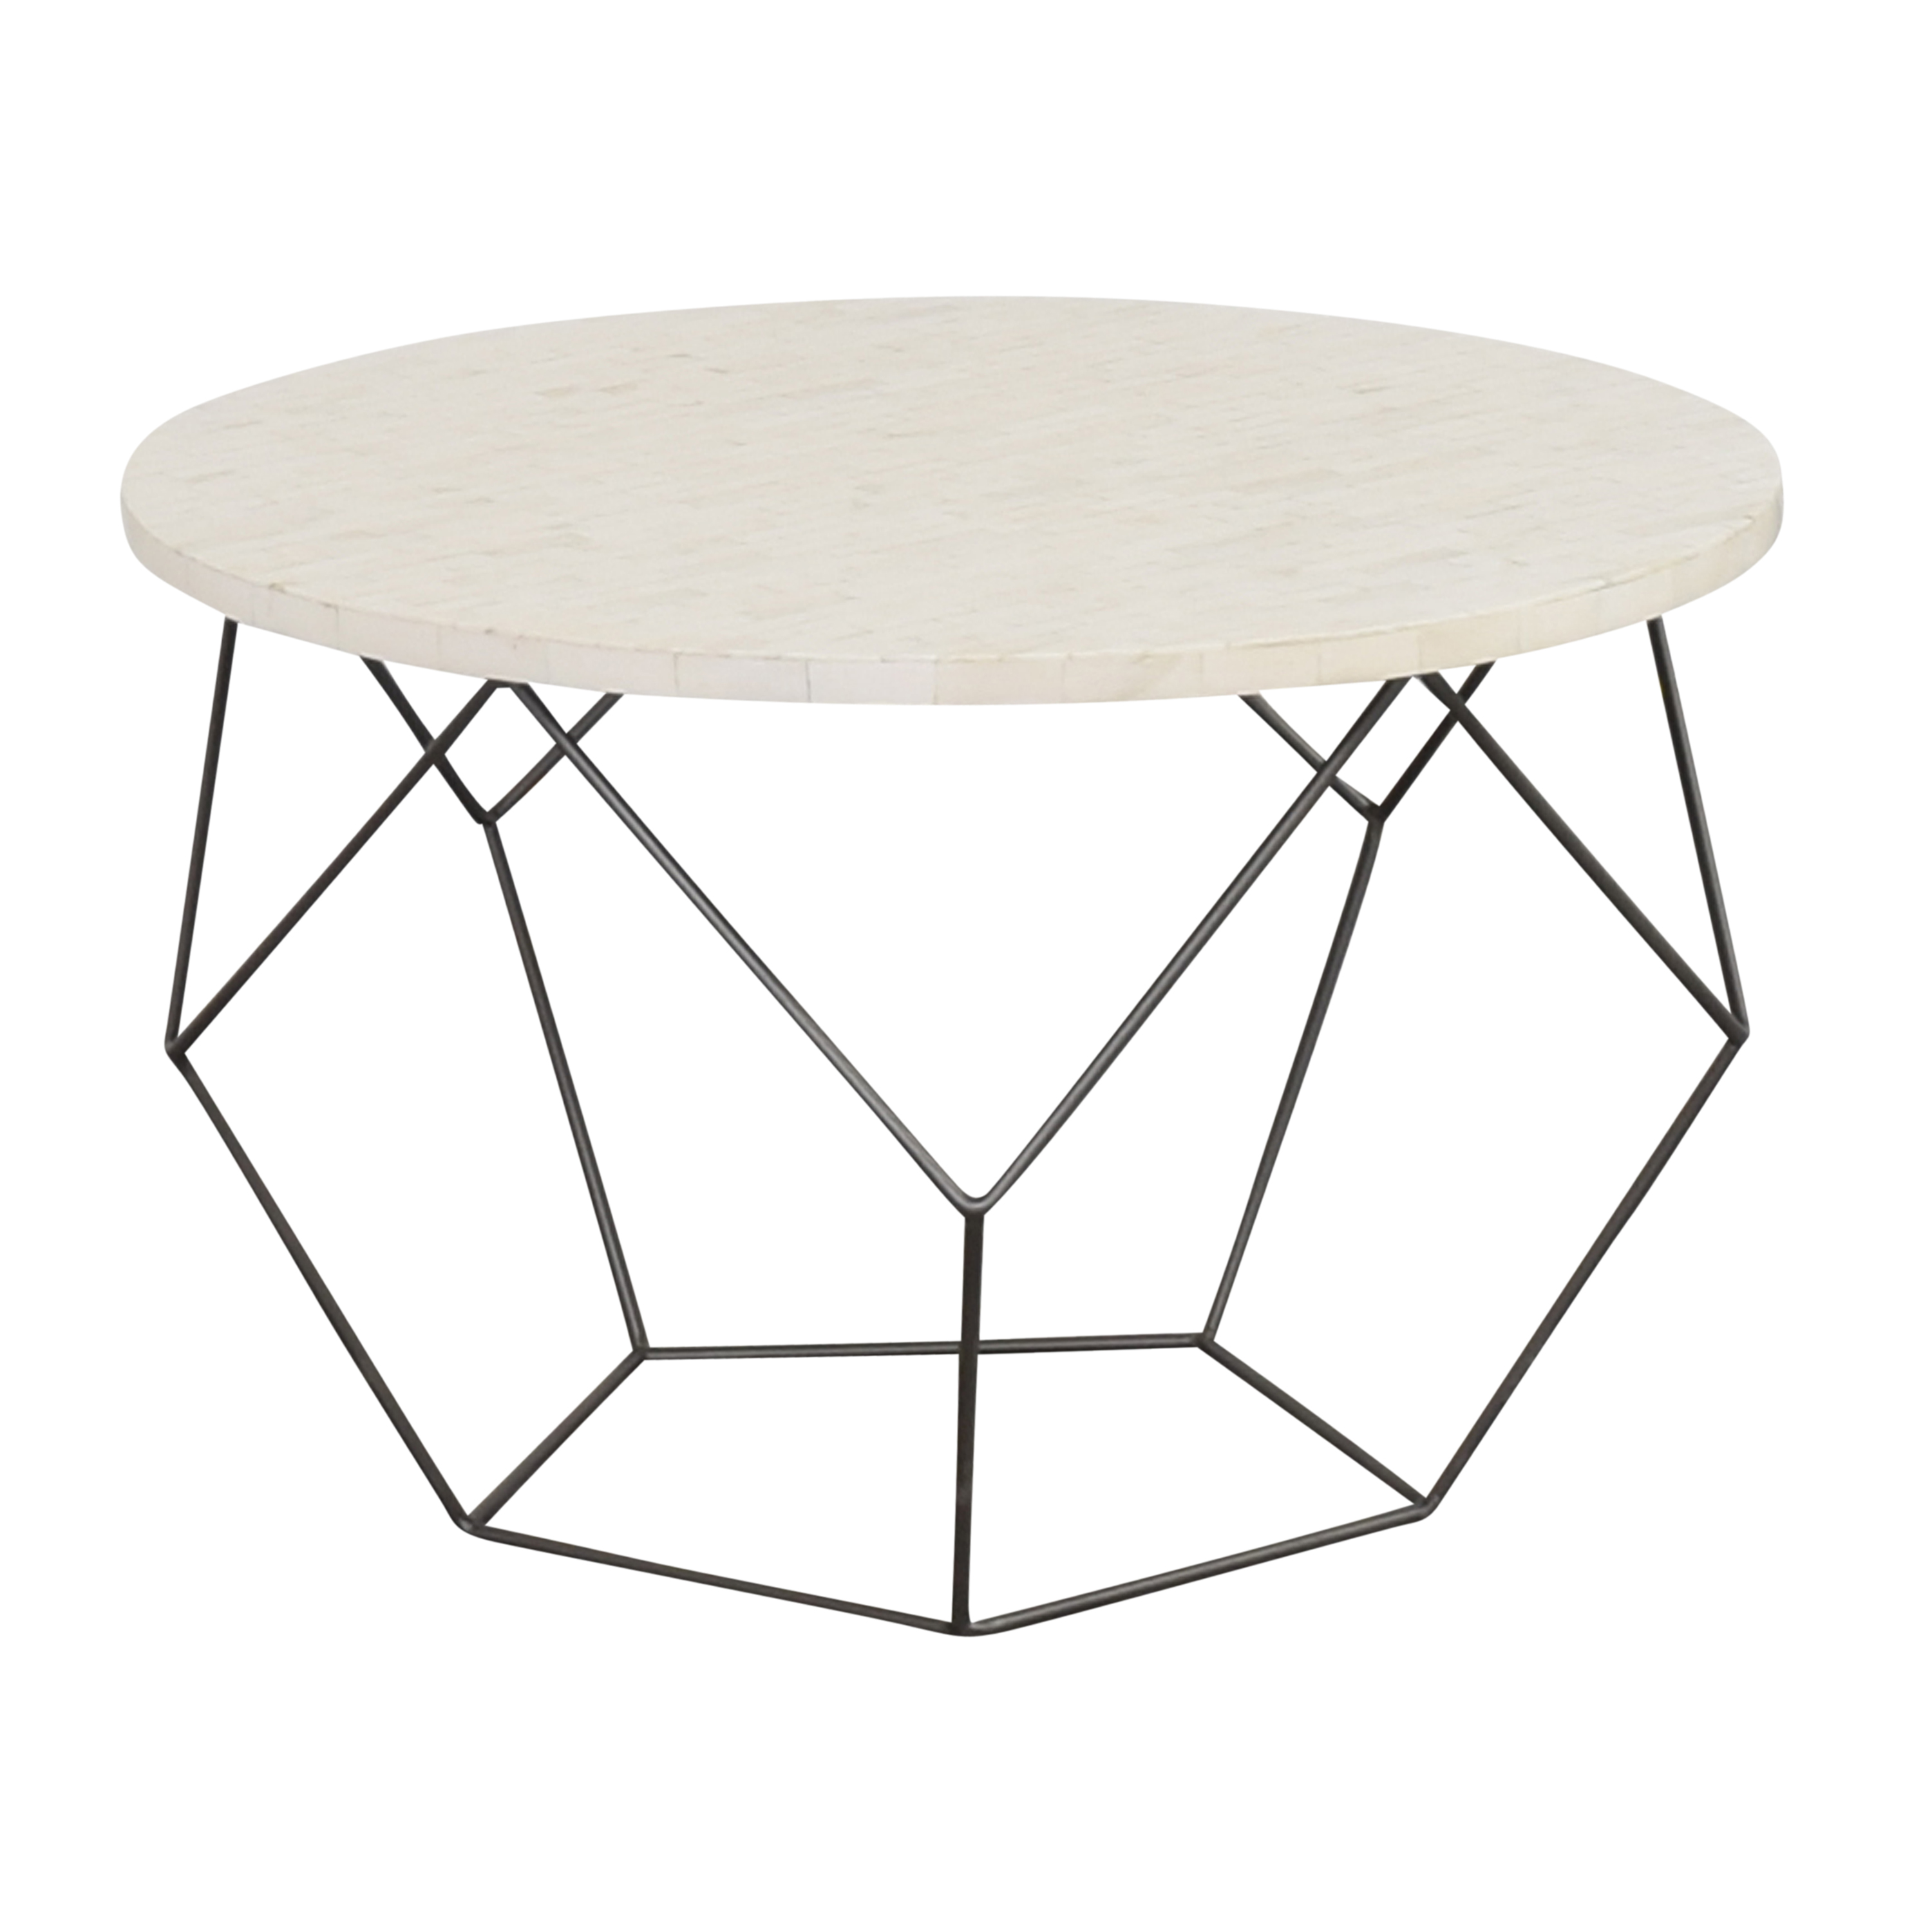 West Elm West Elm Origami Coffee Table for sale